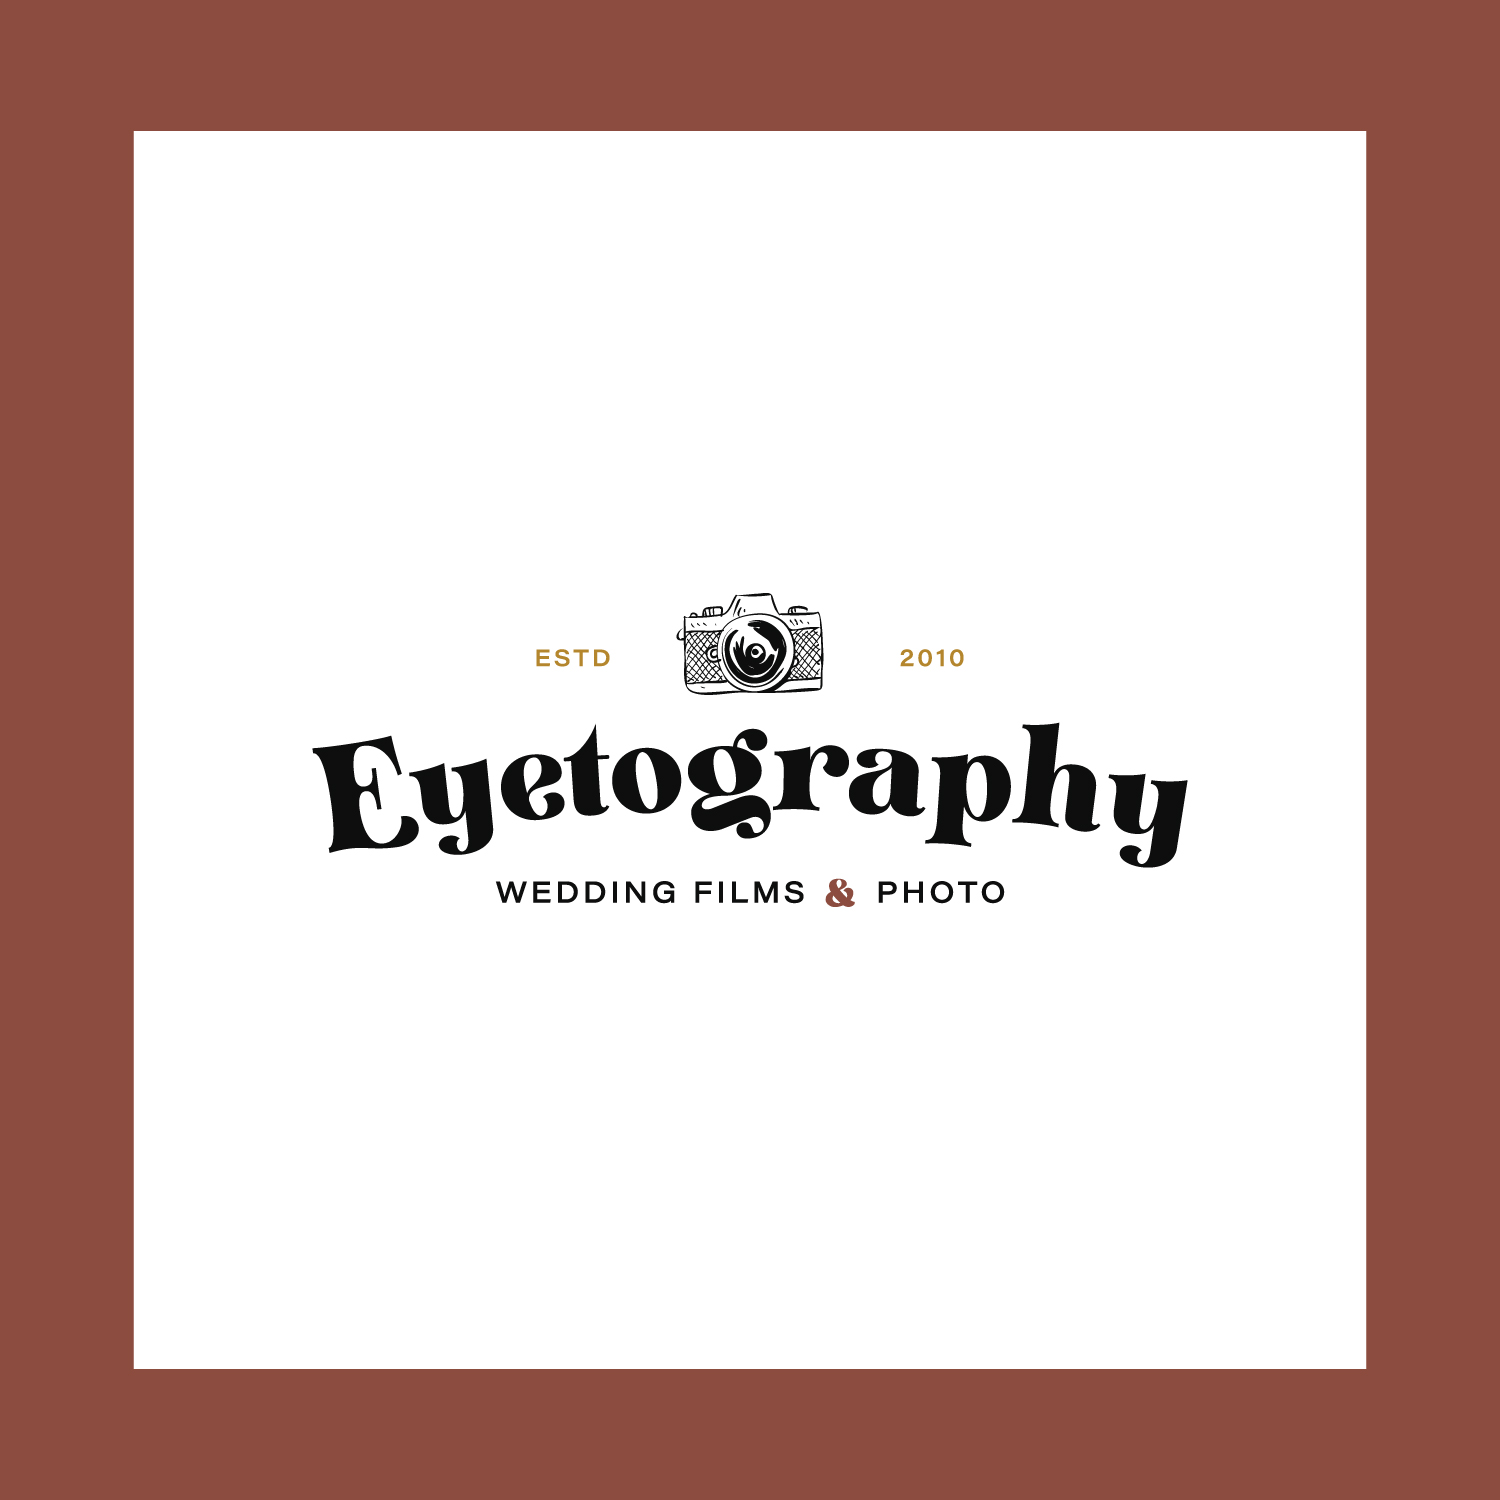 Eyetography primary logo in color